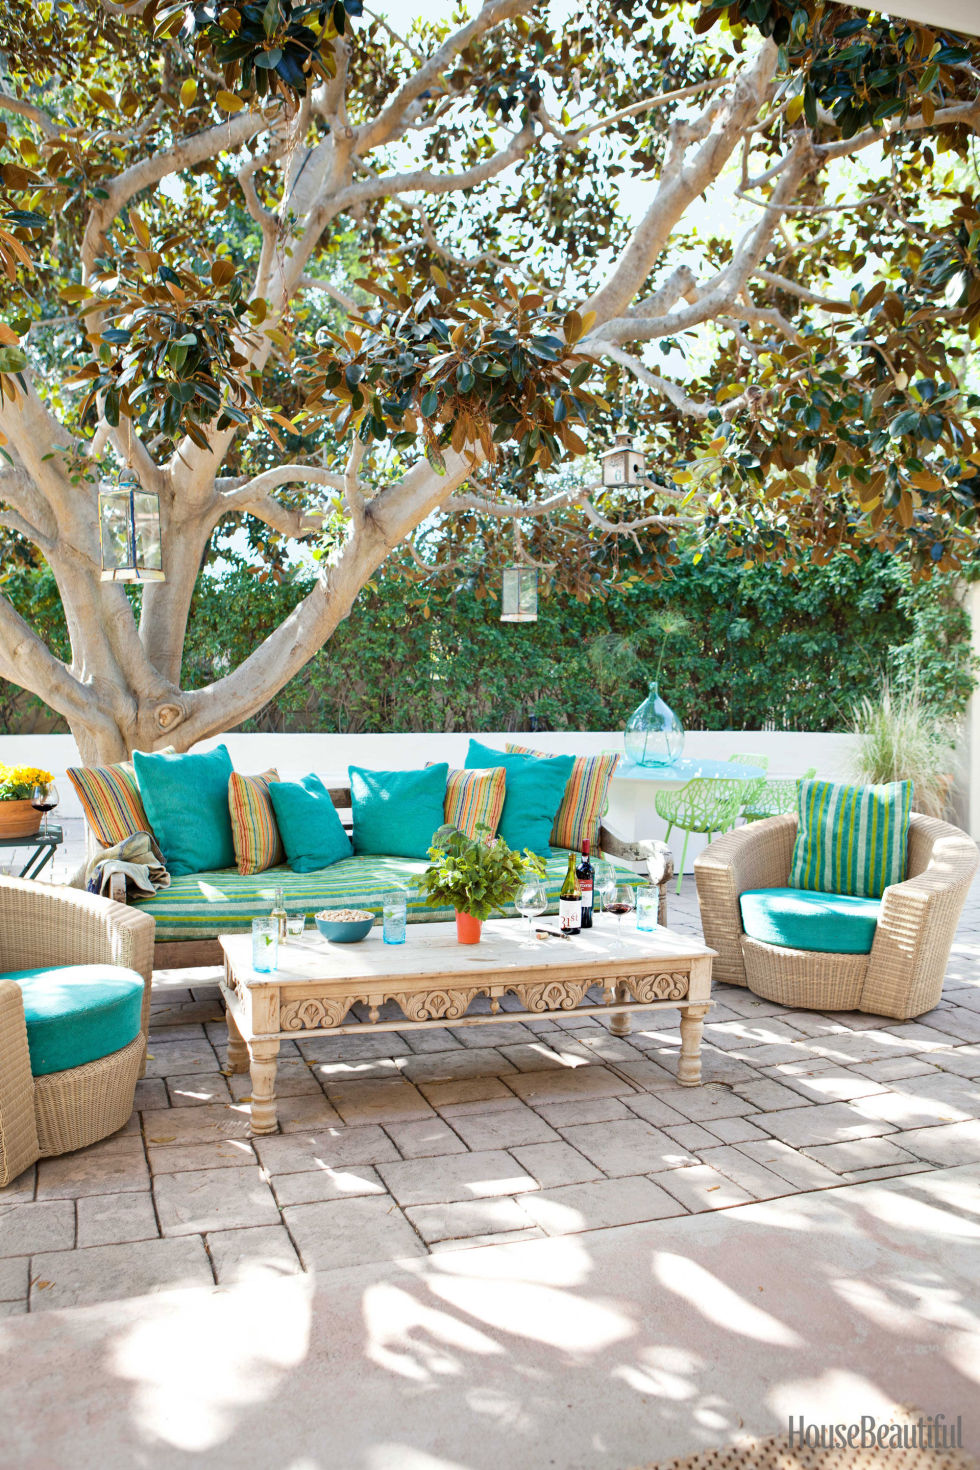 85 Patio And Outdoor Room Design Ideas Photos